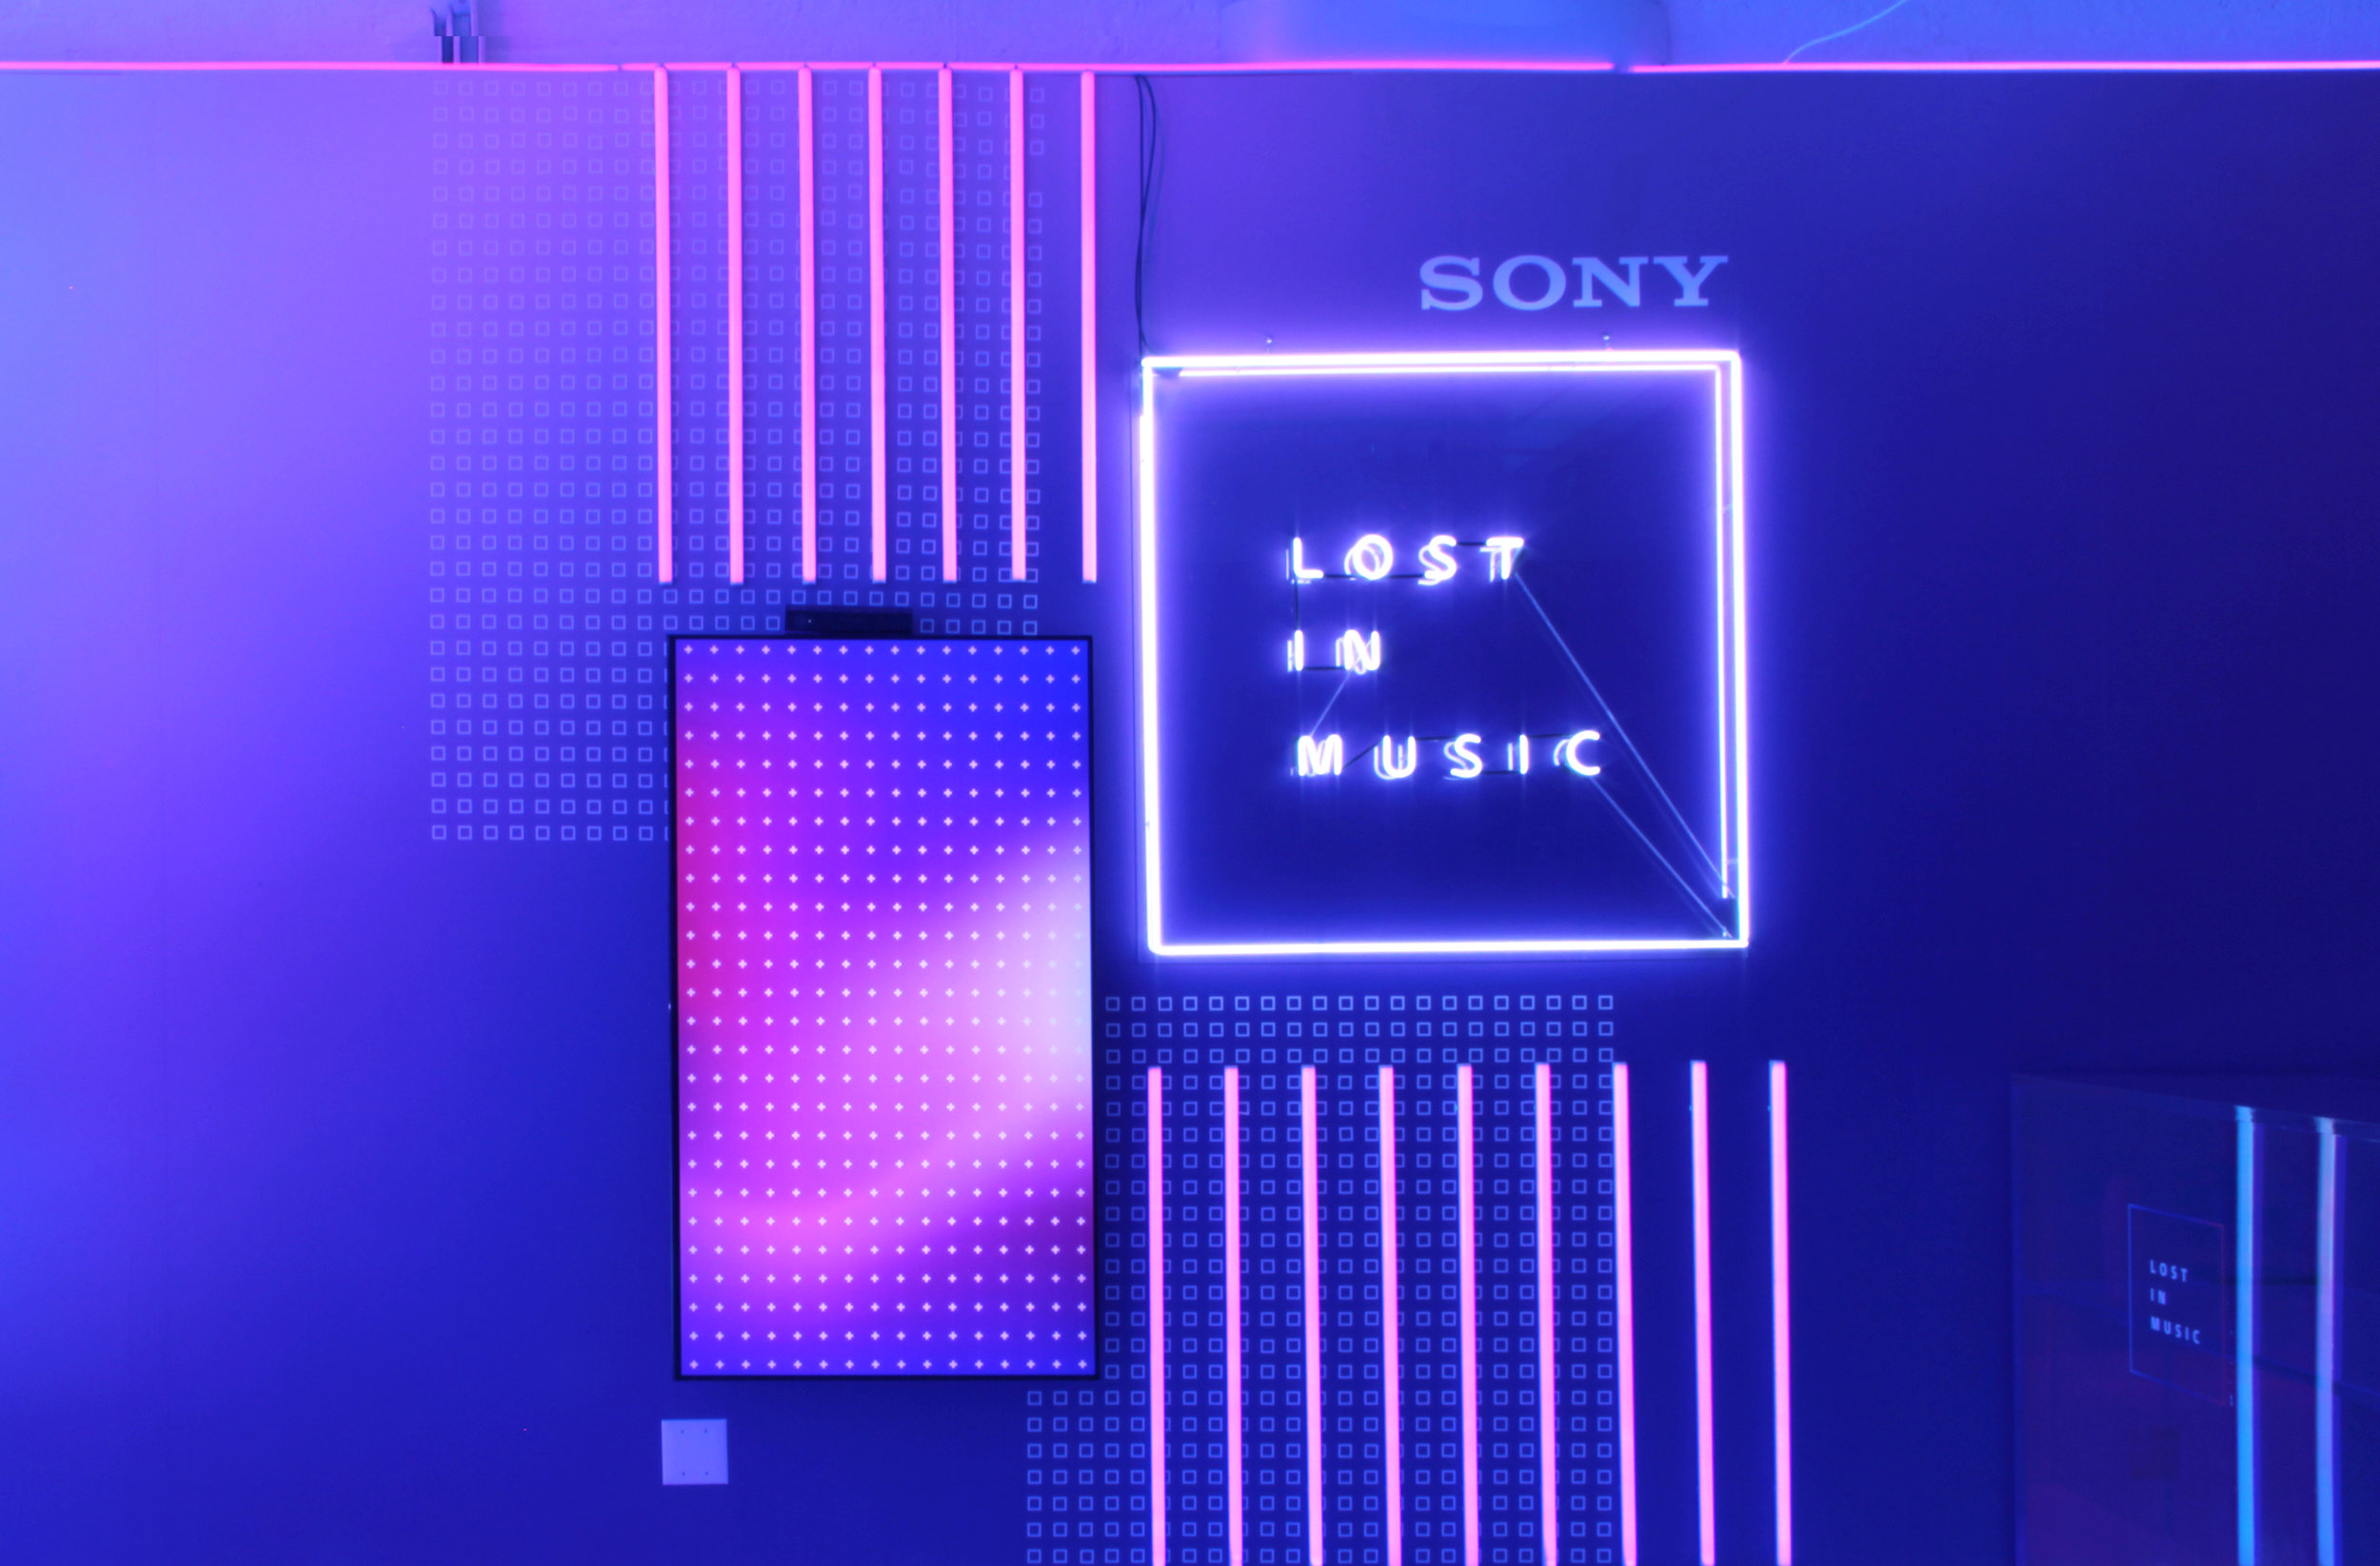 Sony-Lost-in-Music-IMG_3051-©2018-Park8.jpg